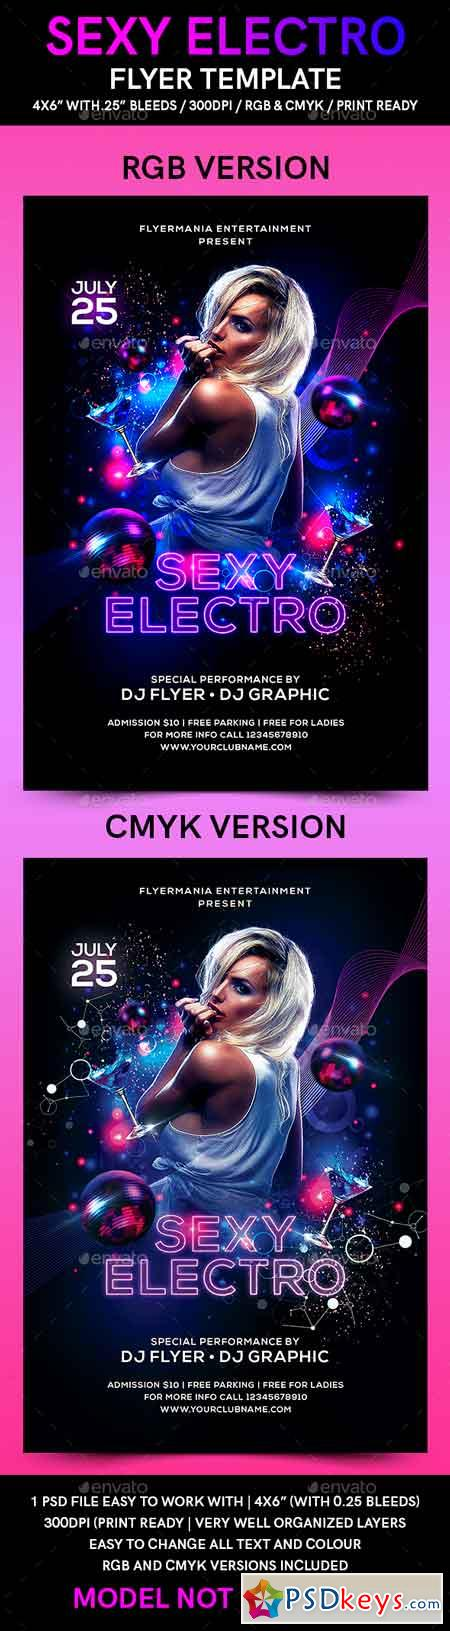 Sexy Electro Flyer Template 21662443 » Free Download Photoshop - electro flyer